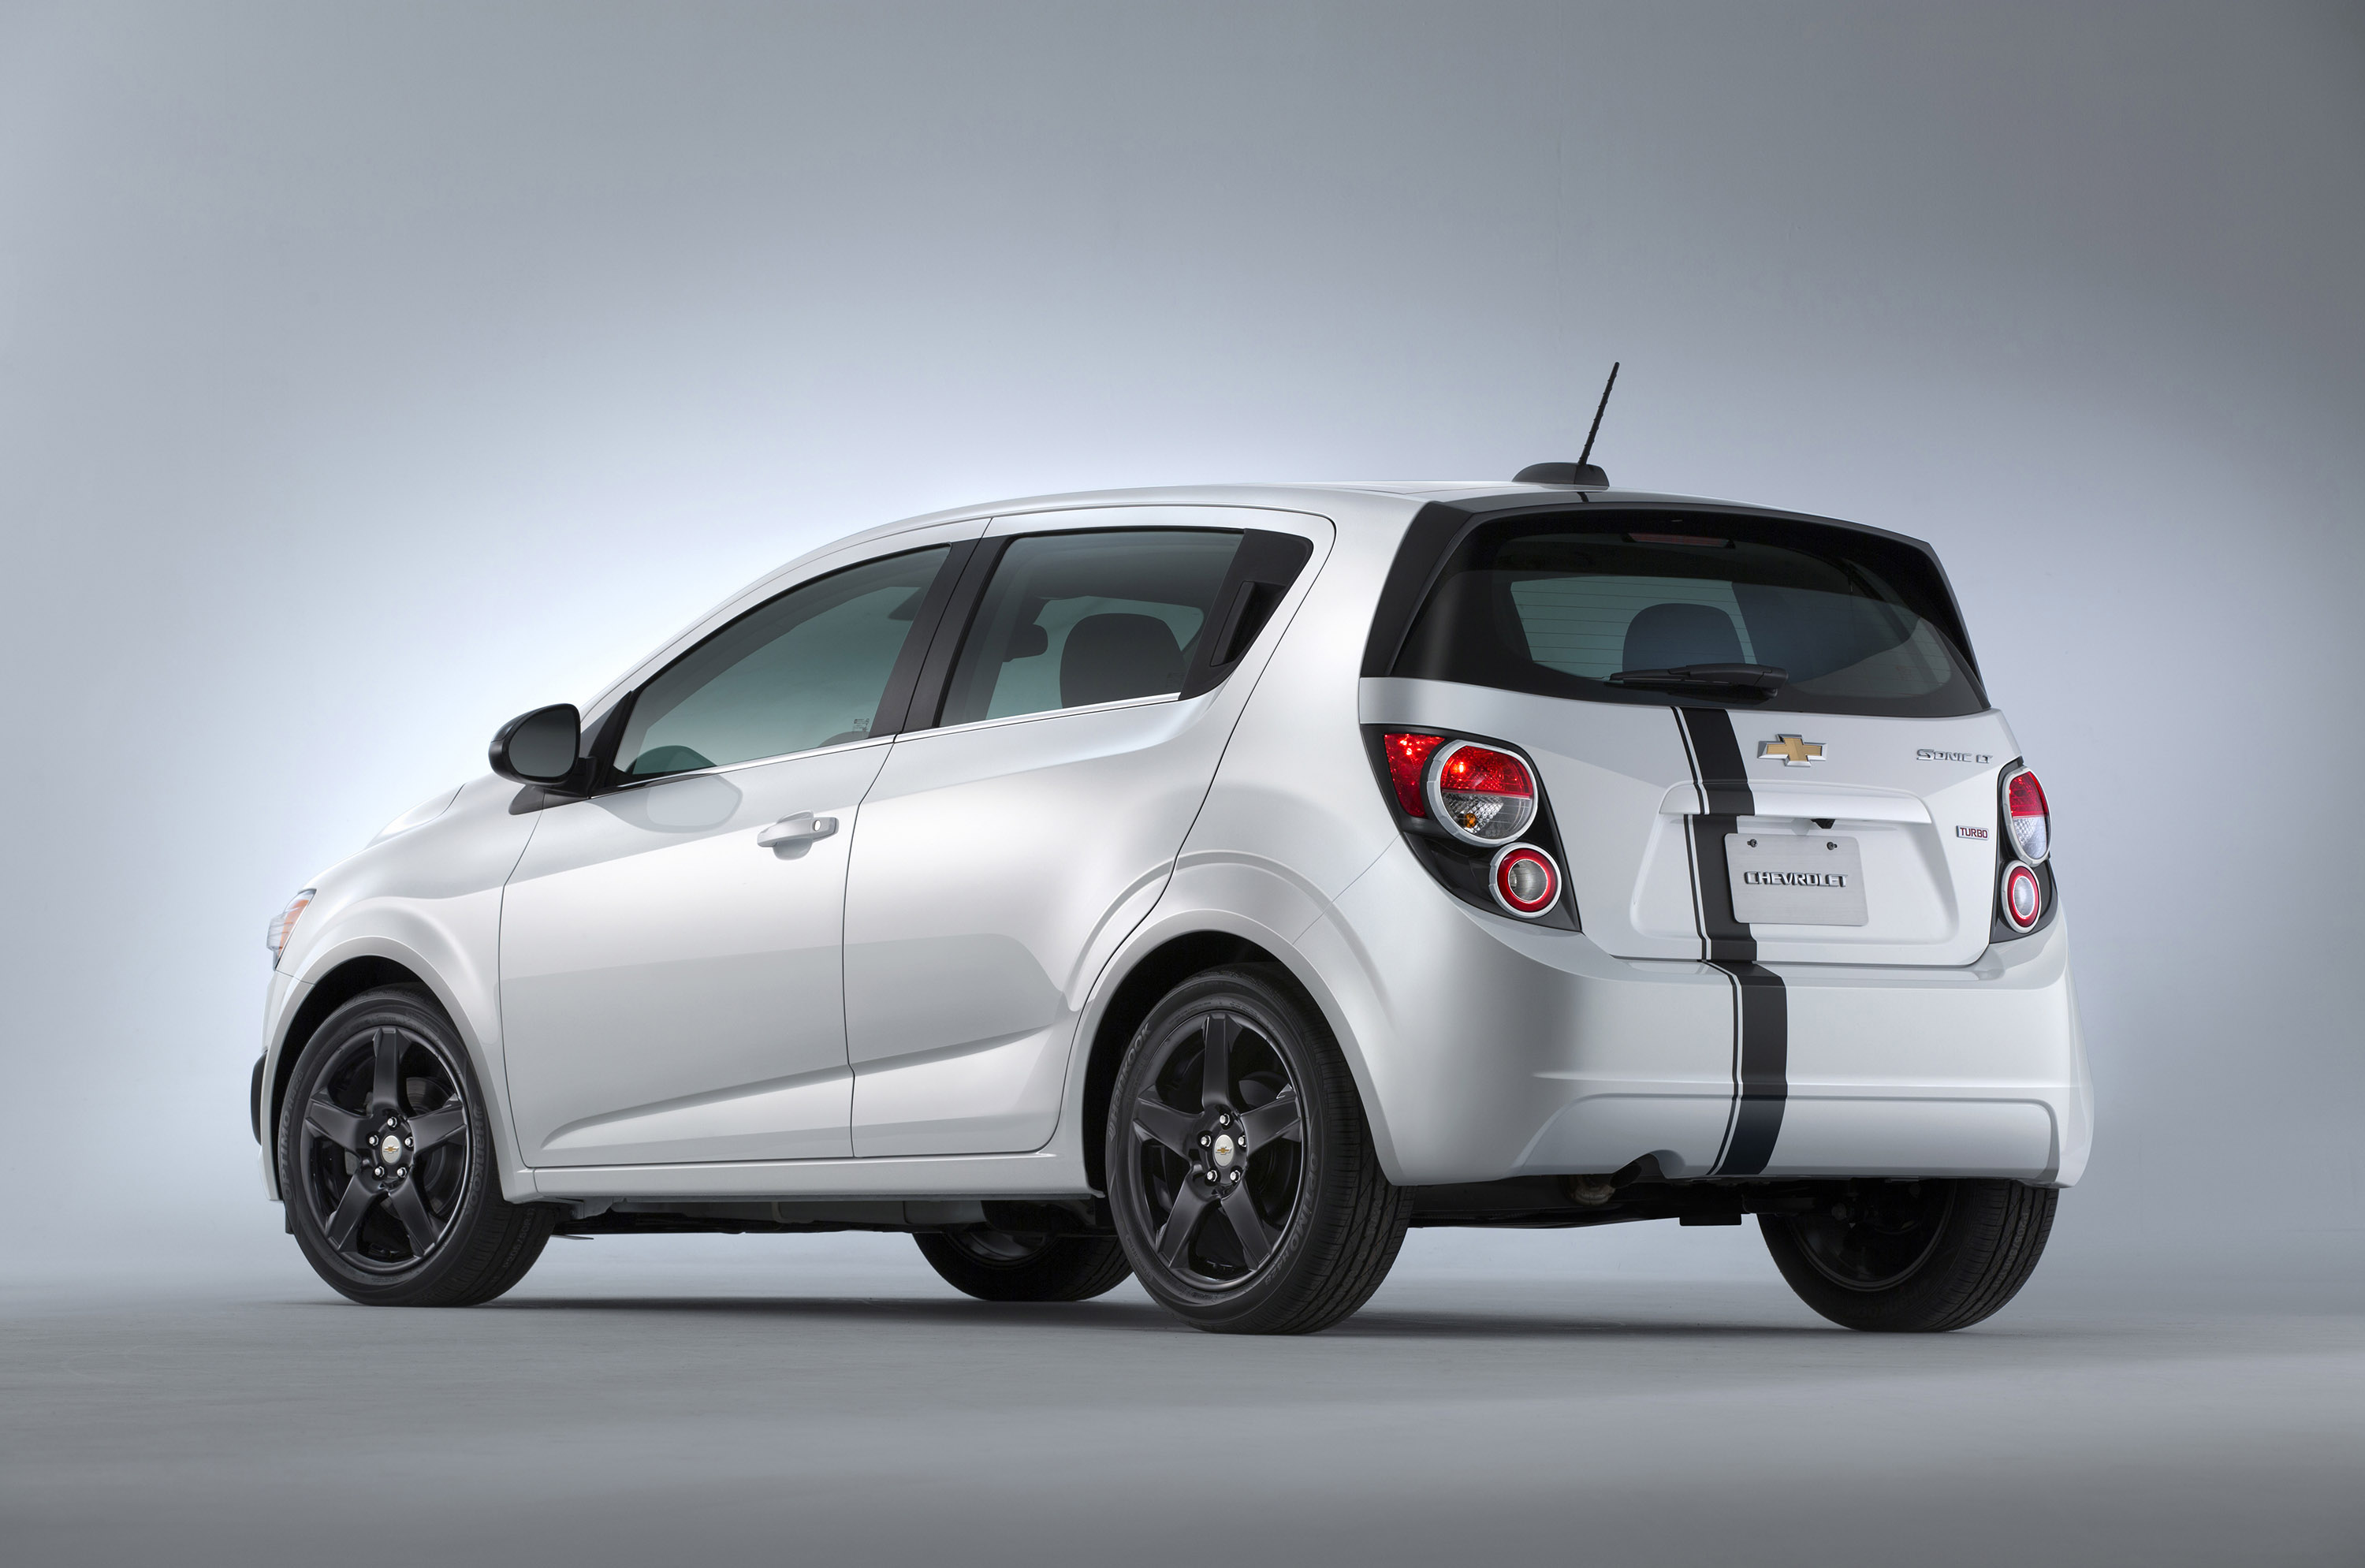 Chevrolet Sonic Accessories Concept - Picture 111707